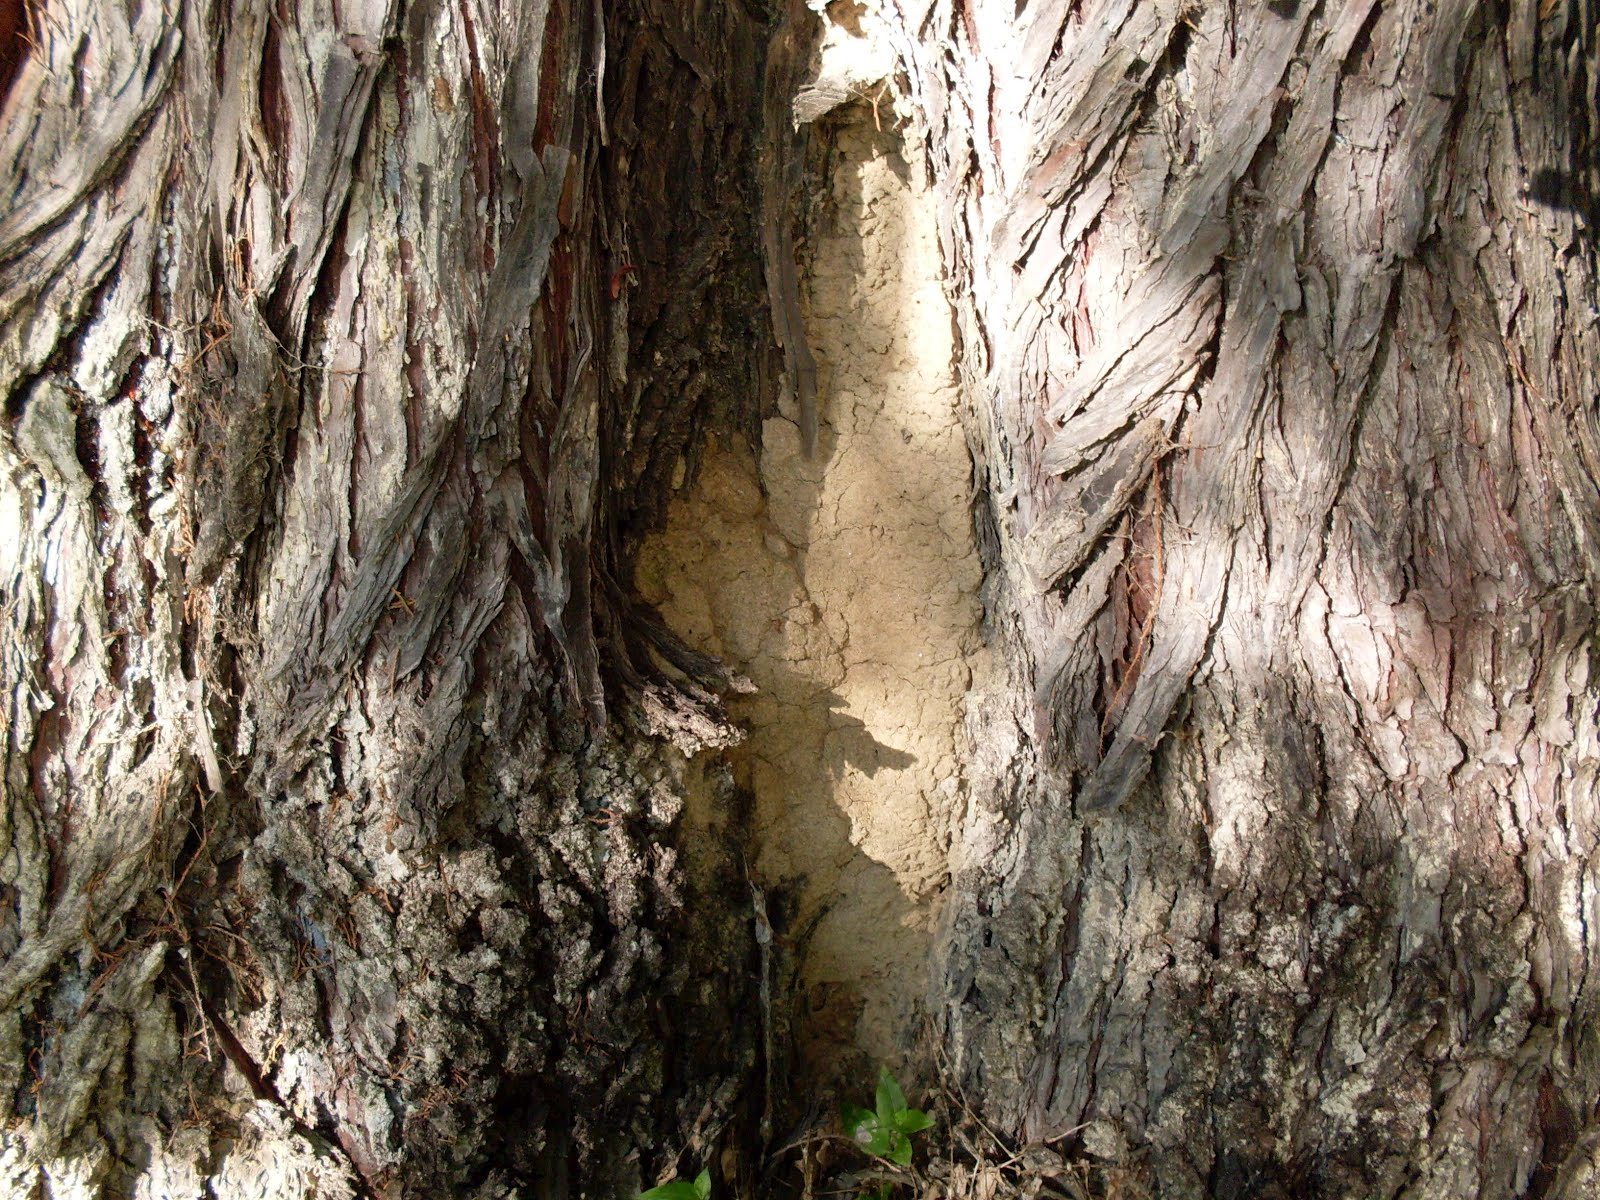 What Happens If Termites Make a Tree Hollow